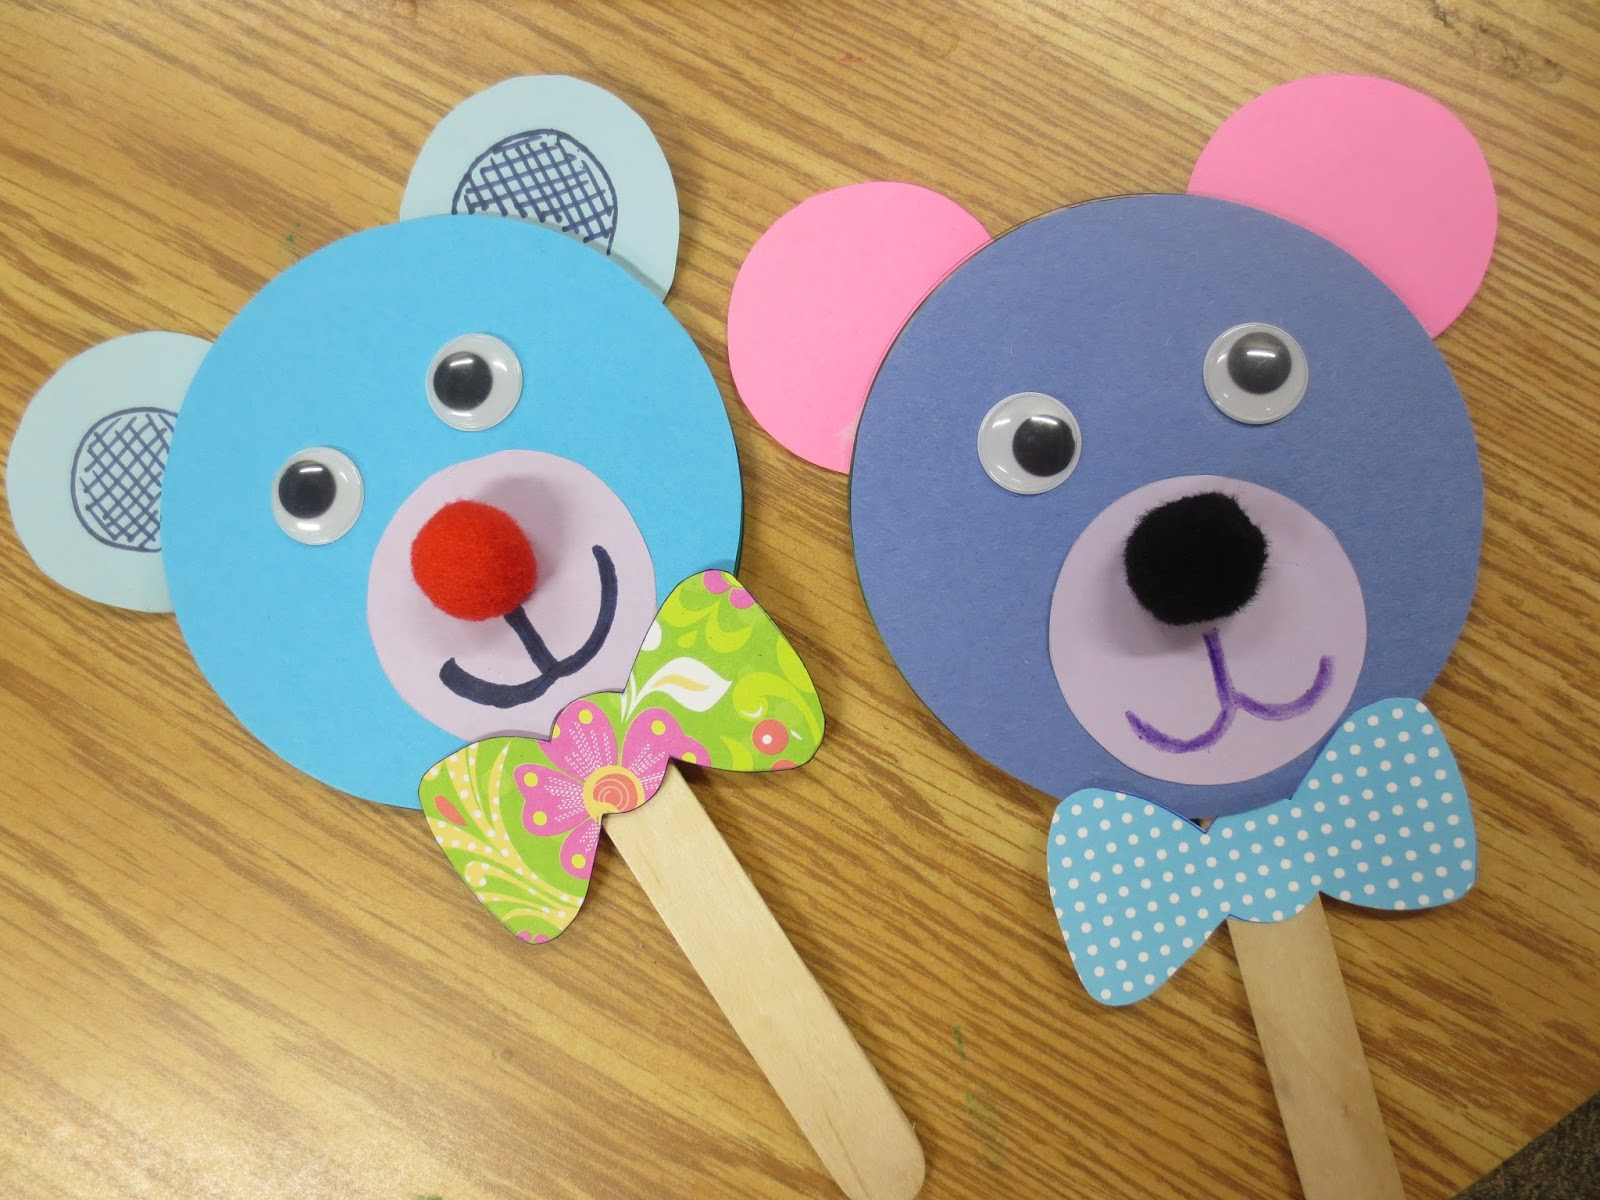 Popsicle stick puppets for How to make popsicle stick crafts